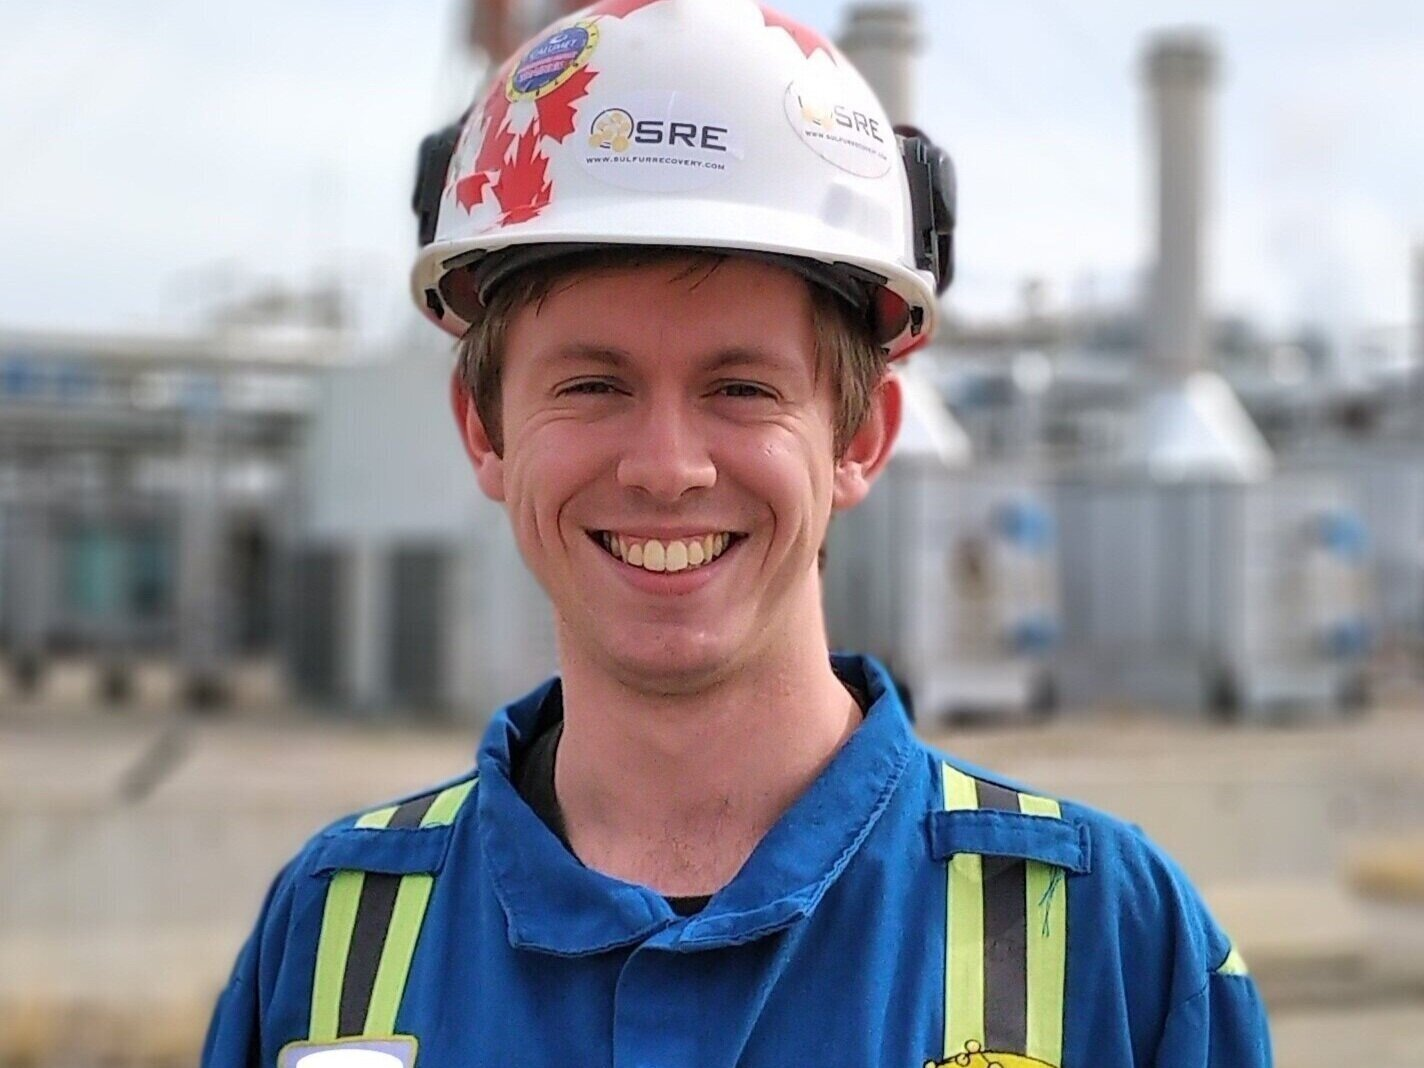 David Wesner E.I.T - David graduated in 2017 with a BSc. In Chemical Engineerng, and is registered as an E.I.T. with APEGA. He joined SRE in September 2019. He also holds a 4th class power engineering certificate from SAIT, and has worked as an operator in SAGD operations. In this role he gained valuable experience in industrial process equipment operation, as well as process controls troubleshooting